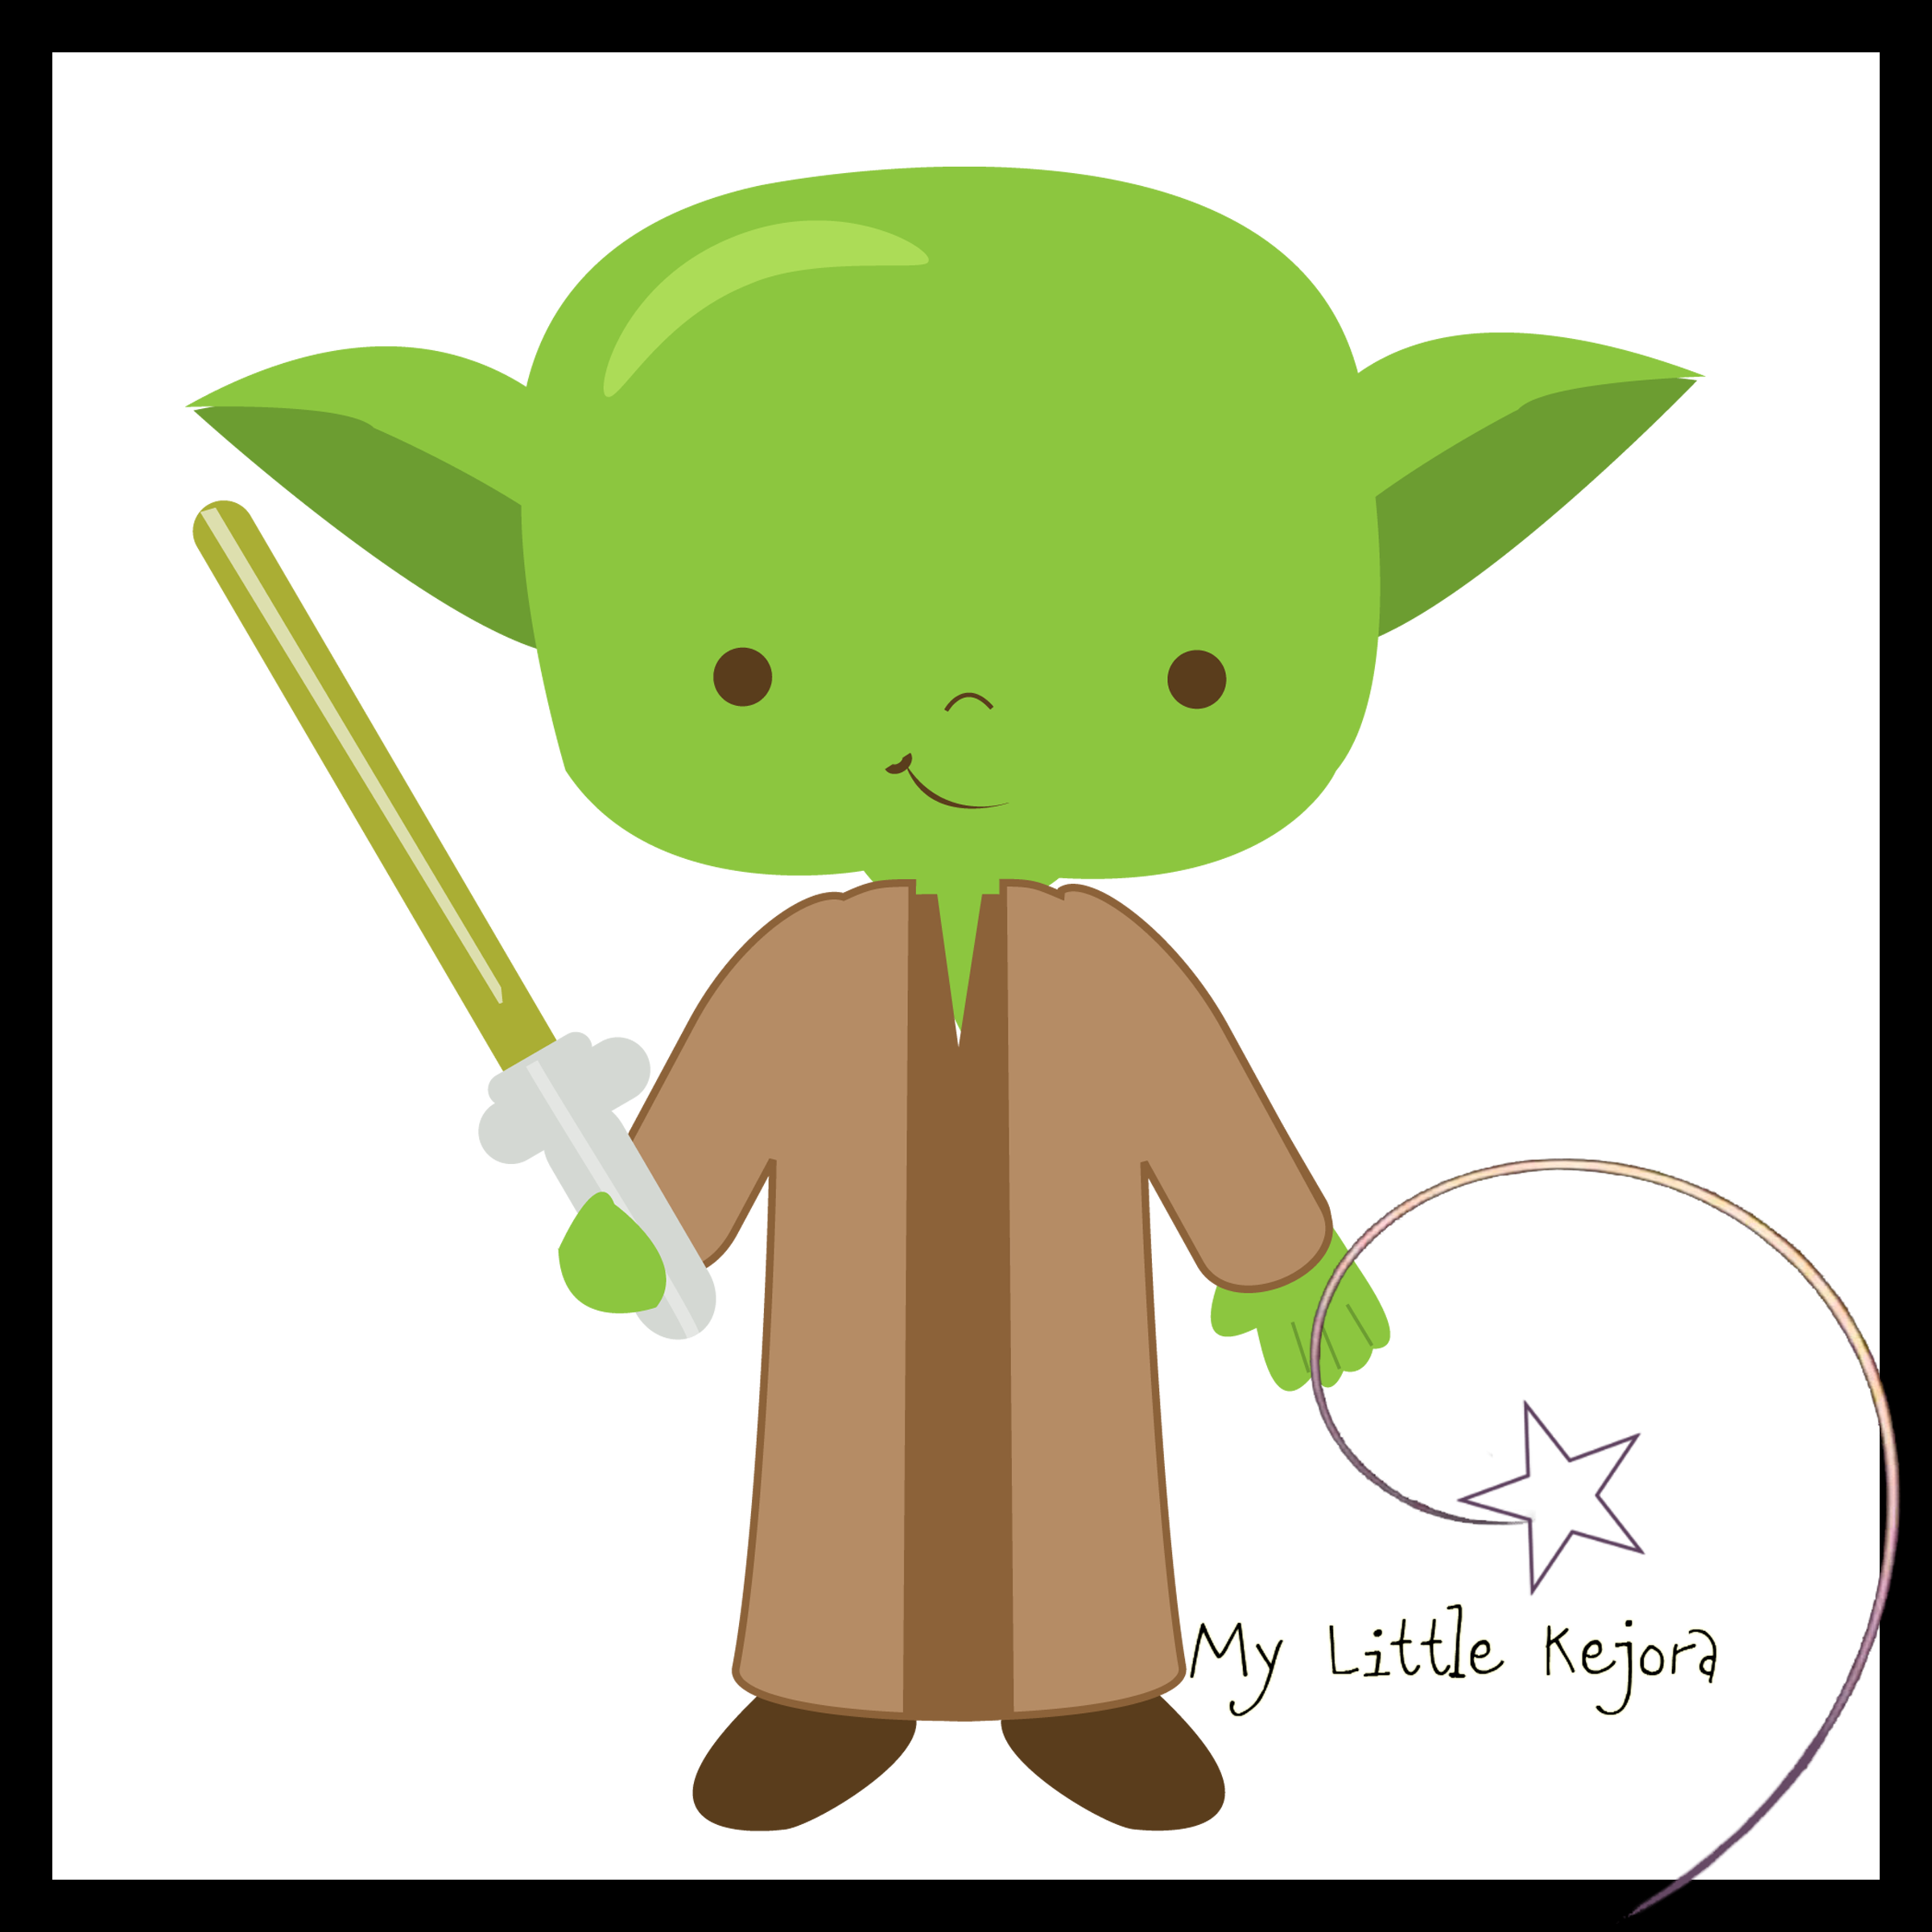 silhouette of yoda at getdrawings com free for personal use rh getdrawings com yoda clip art free yoda clip art free